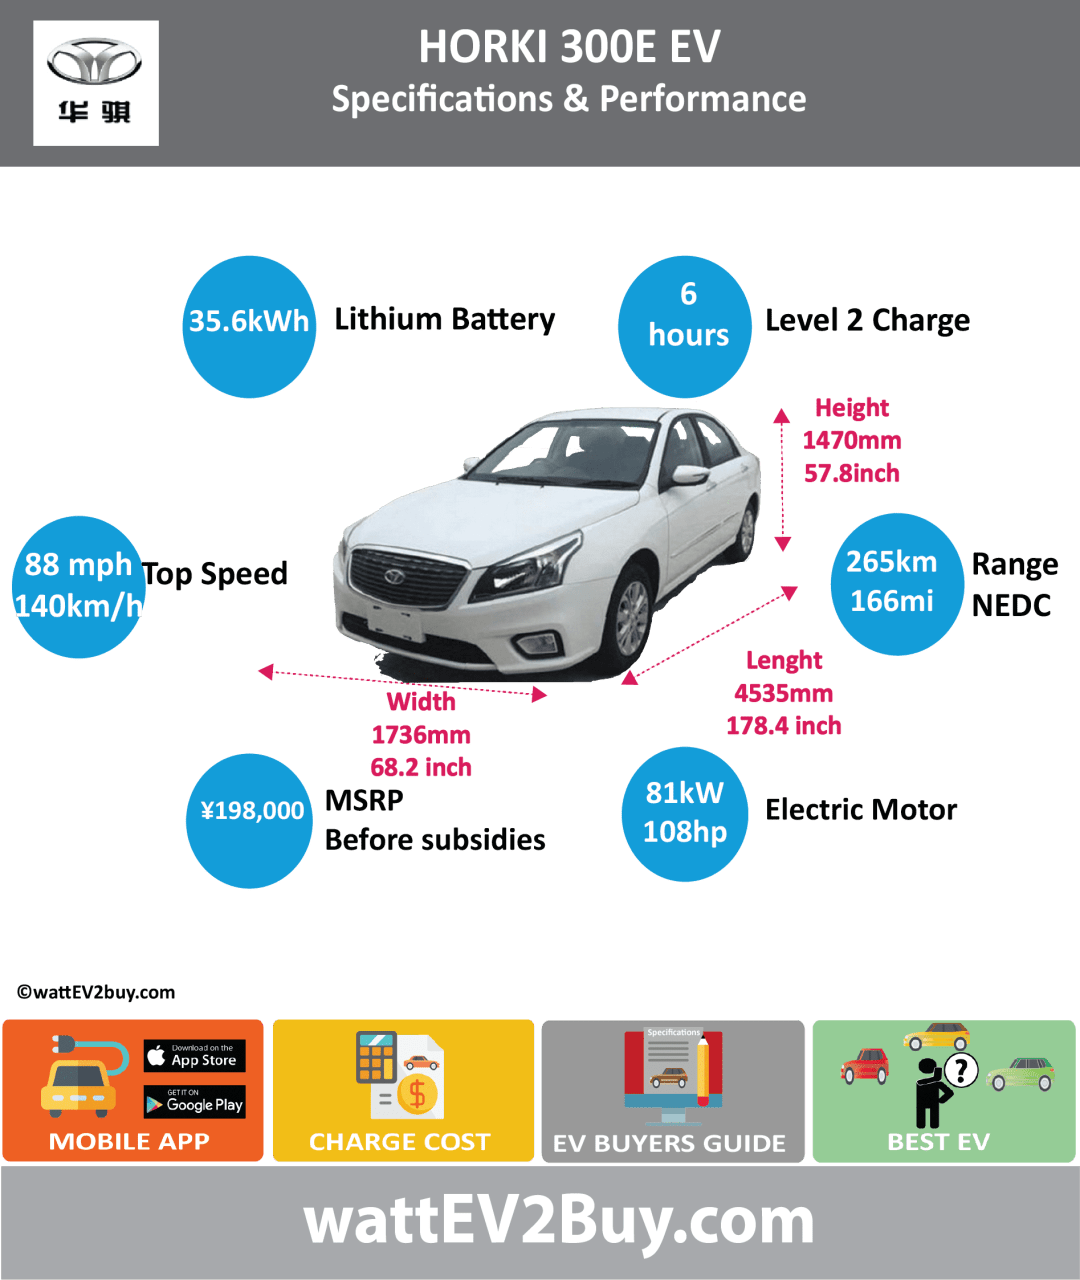 Dongfeng Yueda Kia Horki 300E EV specs wattev2Buy.com 2017 Battery Chemistry Battery Capacity kWh 35.6 Battery Nominal rating kWh Voltage V 321 Amps Ah 111 Cells Modules Weight (kg) 330 Cell Type Cooling Cycles Depth of Discharge (DOD) Energy Density Wh/kg Battery Manufacturer Battery Warranty - years Battery Warranty - km Battery Electric Range - at constant 38mph 194 Battery Electric Range - at constant 60km/h 310 Battery Electric Range - NEDC Mi 166 Battery Electric Range - NEDC km 265 Electric Top Speed - mph 88 Electric Top Speed - km/h 140 Acceleration 0 - 100km/h sec 11 Acceleration 0 - 50km/h sec Onboard Charger kW LV 1 Charge kW LV 1 Charge Time (Hours) LV 2 Charge kW LV 2 Charge Time (Hours) 6 LV 3 CCS/Combo kW LV 3 Charge Time (min to 80%) 30 Charging System kW Charge Connector MPGe Combined - miles MPGe Combined - km MPGe City - miles MPGe City - km MPGe Highway - miles MPGe Highway - km Max Power - hp 108 Max Power - kW 81.4 Max Torque - lb.ft Max Torque - N.m 285 Drivetrain Motor Type Electric Motor - Front Max Power - hp Max Power - kW Max Torque - lb.ft Max Torque - N.m Electric Motor - Rear Max Power - hp Max Power - kW Max Torque - lb.ft Max Torque - N.m Transmission Energy Consumption kWh/100km CHINA MSRP (before incentives & destination) ¥198,000.00 MSRP after incentives ¥109,800.00 Vehicle Doors Seating Dimensions GVWR (kg) Curb Weight (kg) 1445 Payload Capacity (lbs) Towing Capacity (lbs) Lenght (mm) 4535 Width (mm) 1735 Height (mm) 1470 Wheelbase (mm) 2610 Lenght (inc) 178.4 Width (inc) 68.2 Height (inc) 57.8 Wheelbase (inc) 102.7 Ground Clearance (mm) Other Market Class Compact Sedan Incentives Safety Level Unveiled 2017 Chengdu Auto Show First Delivery Based On Gen 1 Kia Cerato SAE Autonomous Level Self-Driving System Connectivity Unique Chinese Name 华骐300E Model Code YQZ7002BEV WEBSITE